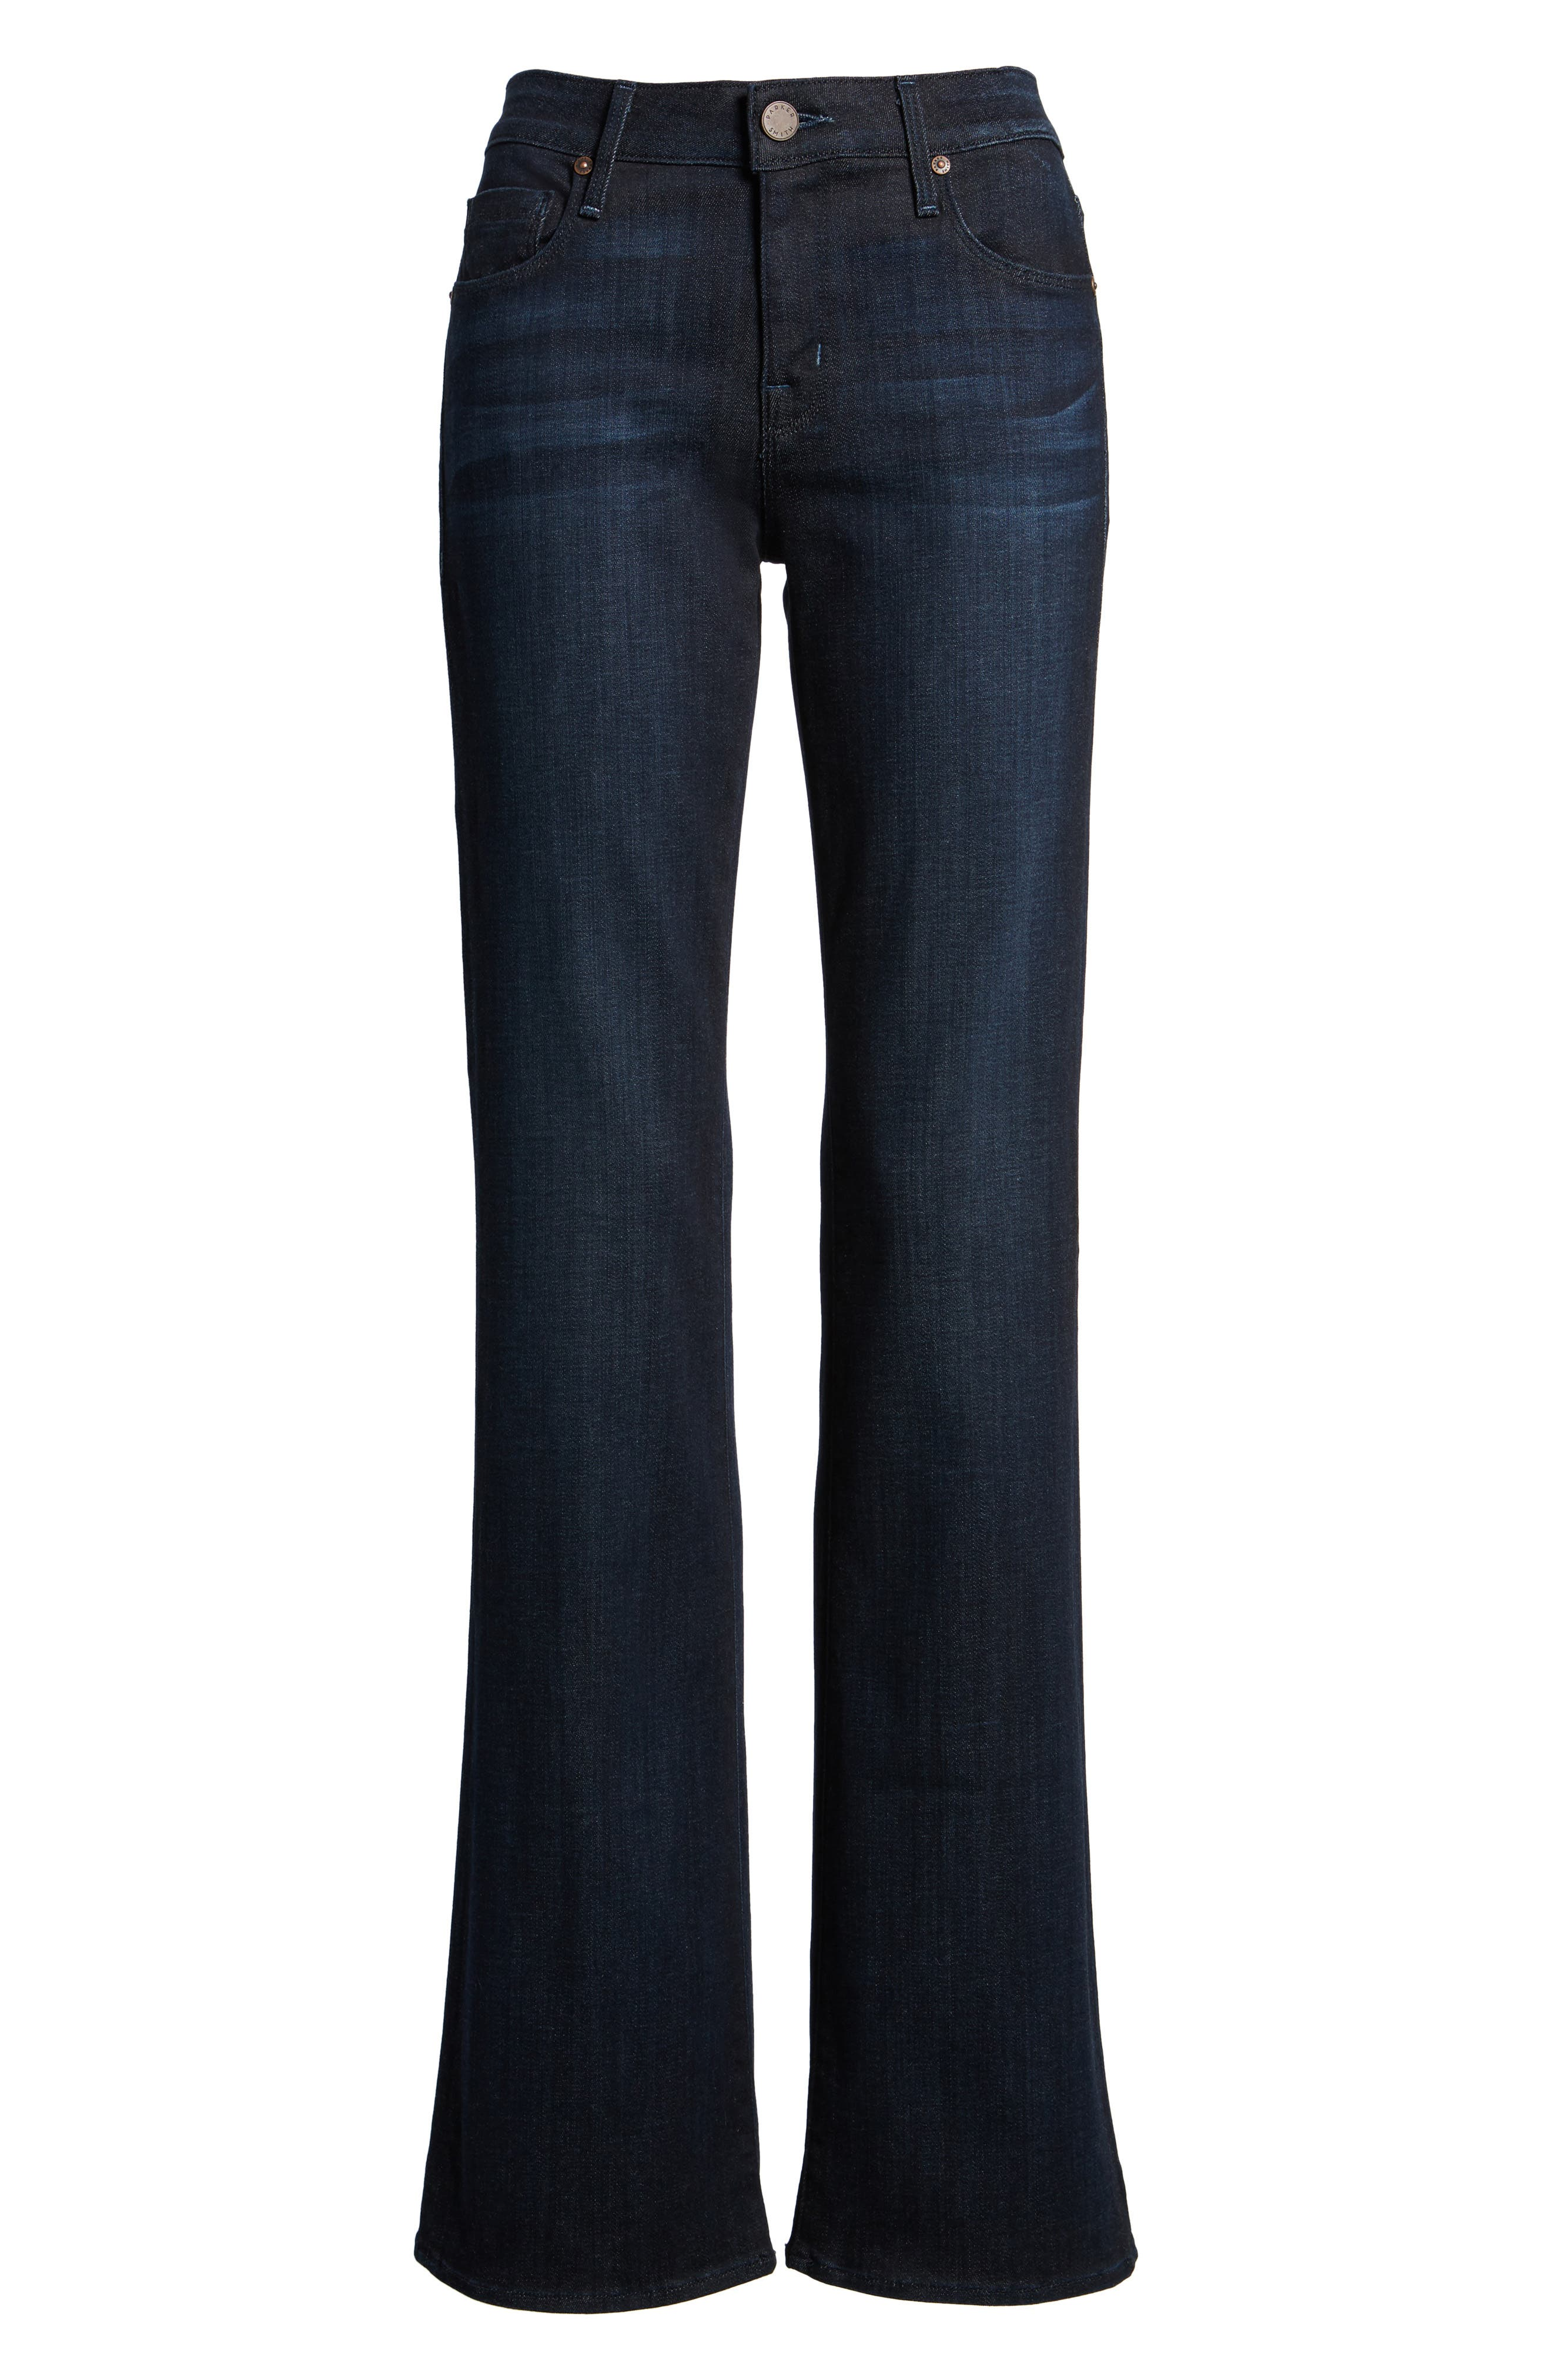 Becky Bootcut Jeans,                             Alternate thumbnail 6, color,                             Washed Sky